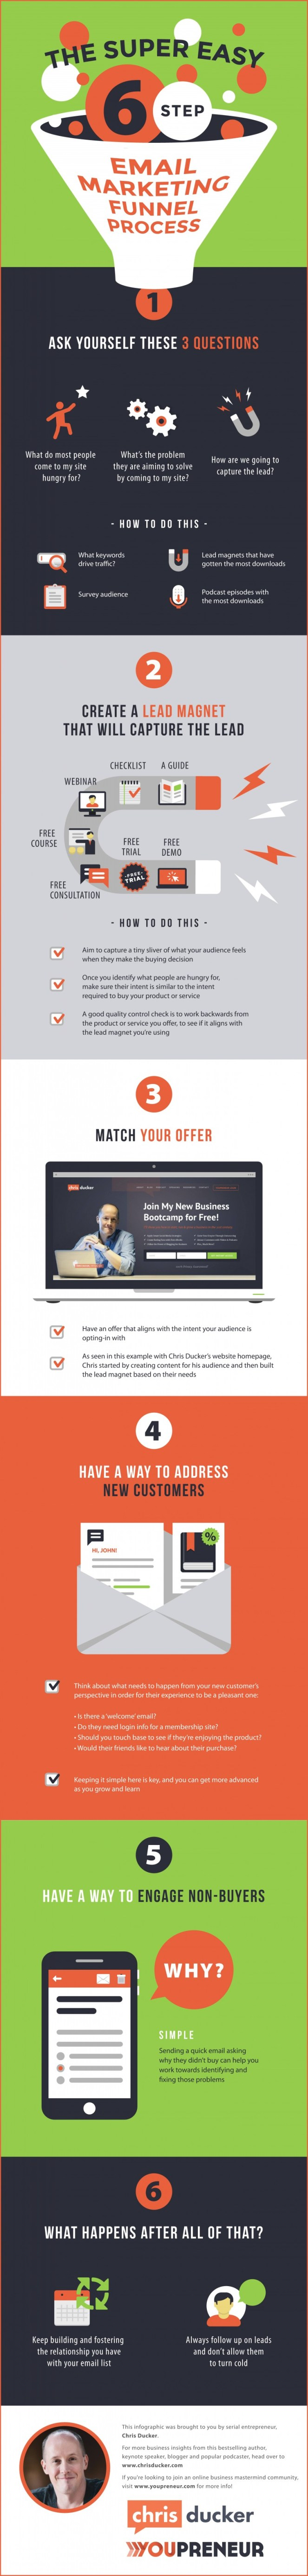 The Super Easy 6-Step Email Marketing Funnel [Infographic]